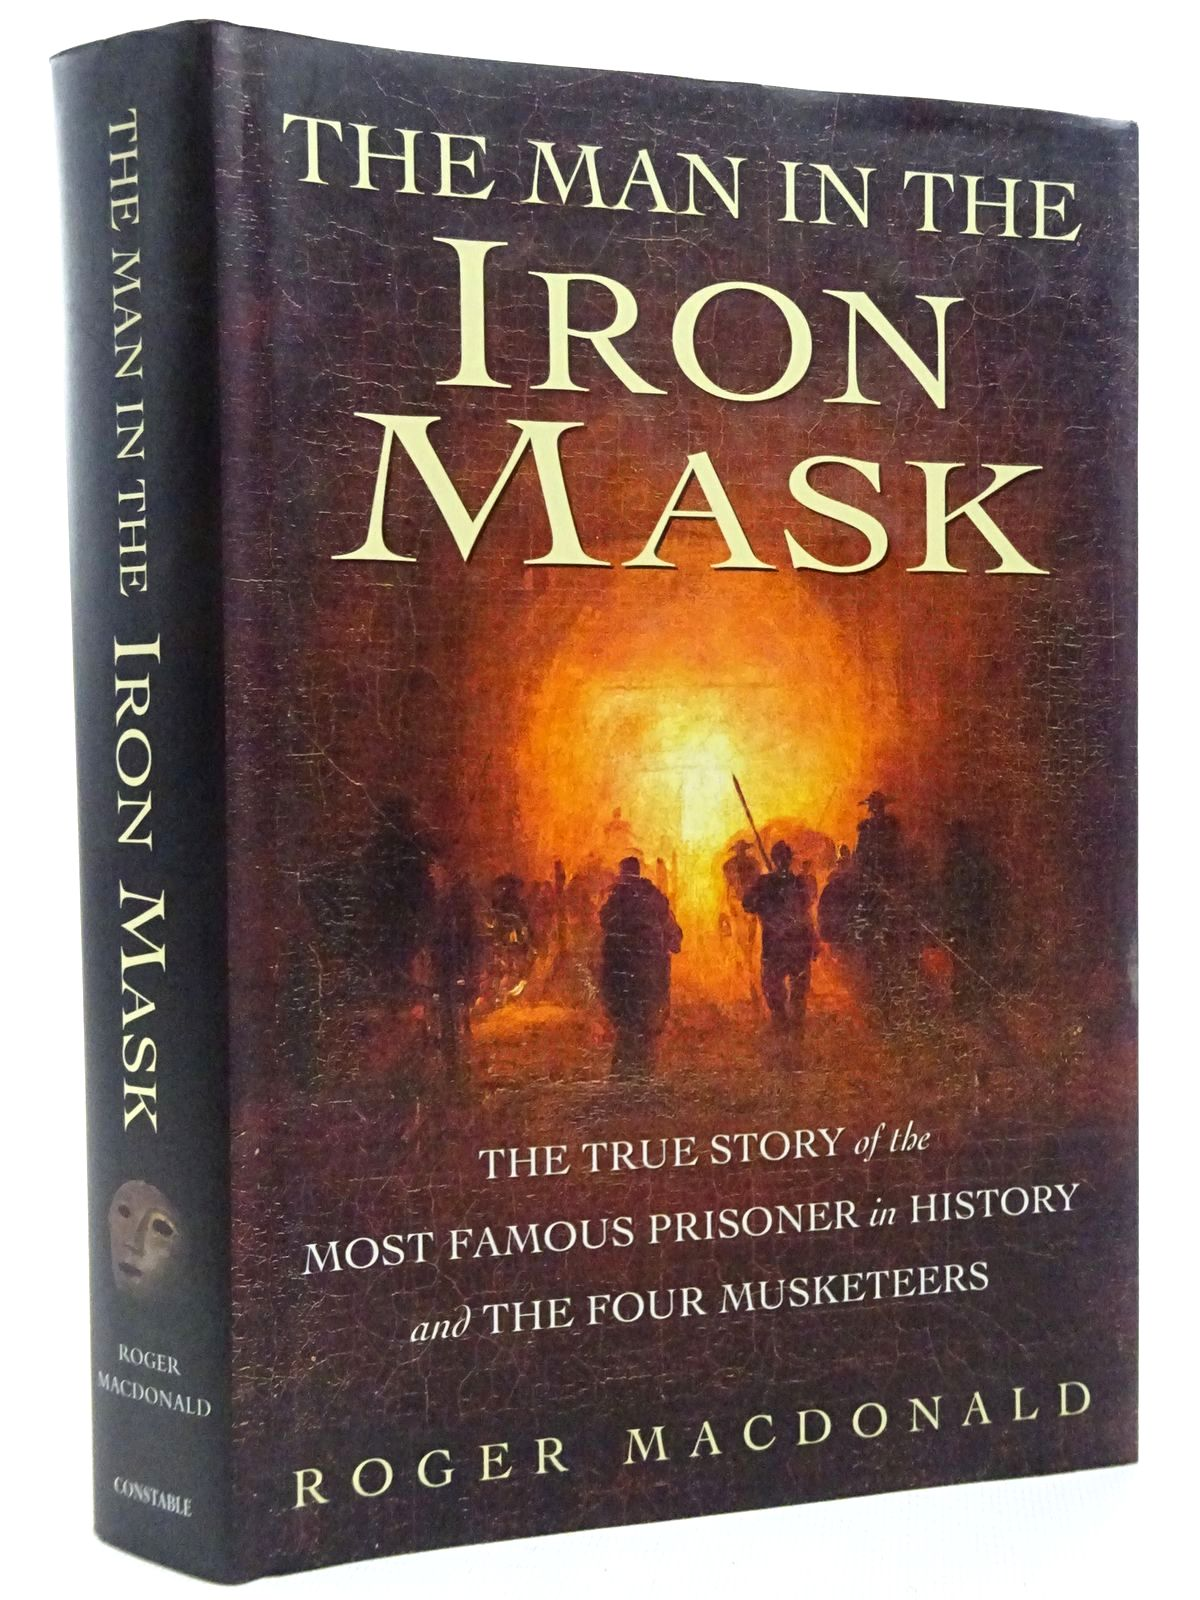 Photo of THE MAN IN THE IRON MASK: THE TRUE STORY OF THE MOST FAMOUS PRISONER IN HISTORY AND THE FOUR MUSKETEERS written by Macdonald, Roger published by Constable (STOCK CODE: 1815904)  for sale by Stella & Rose's Books